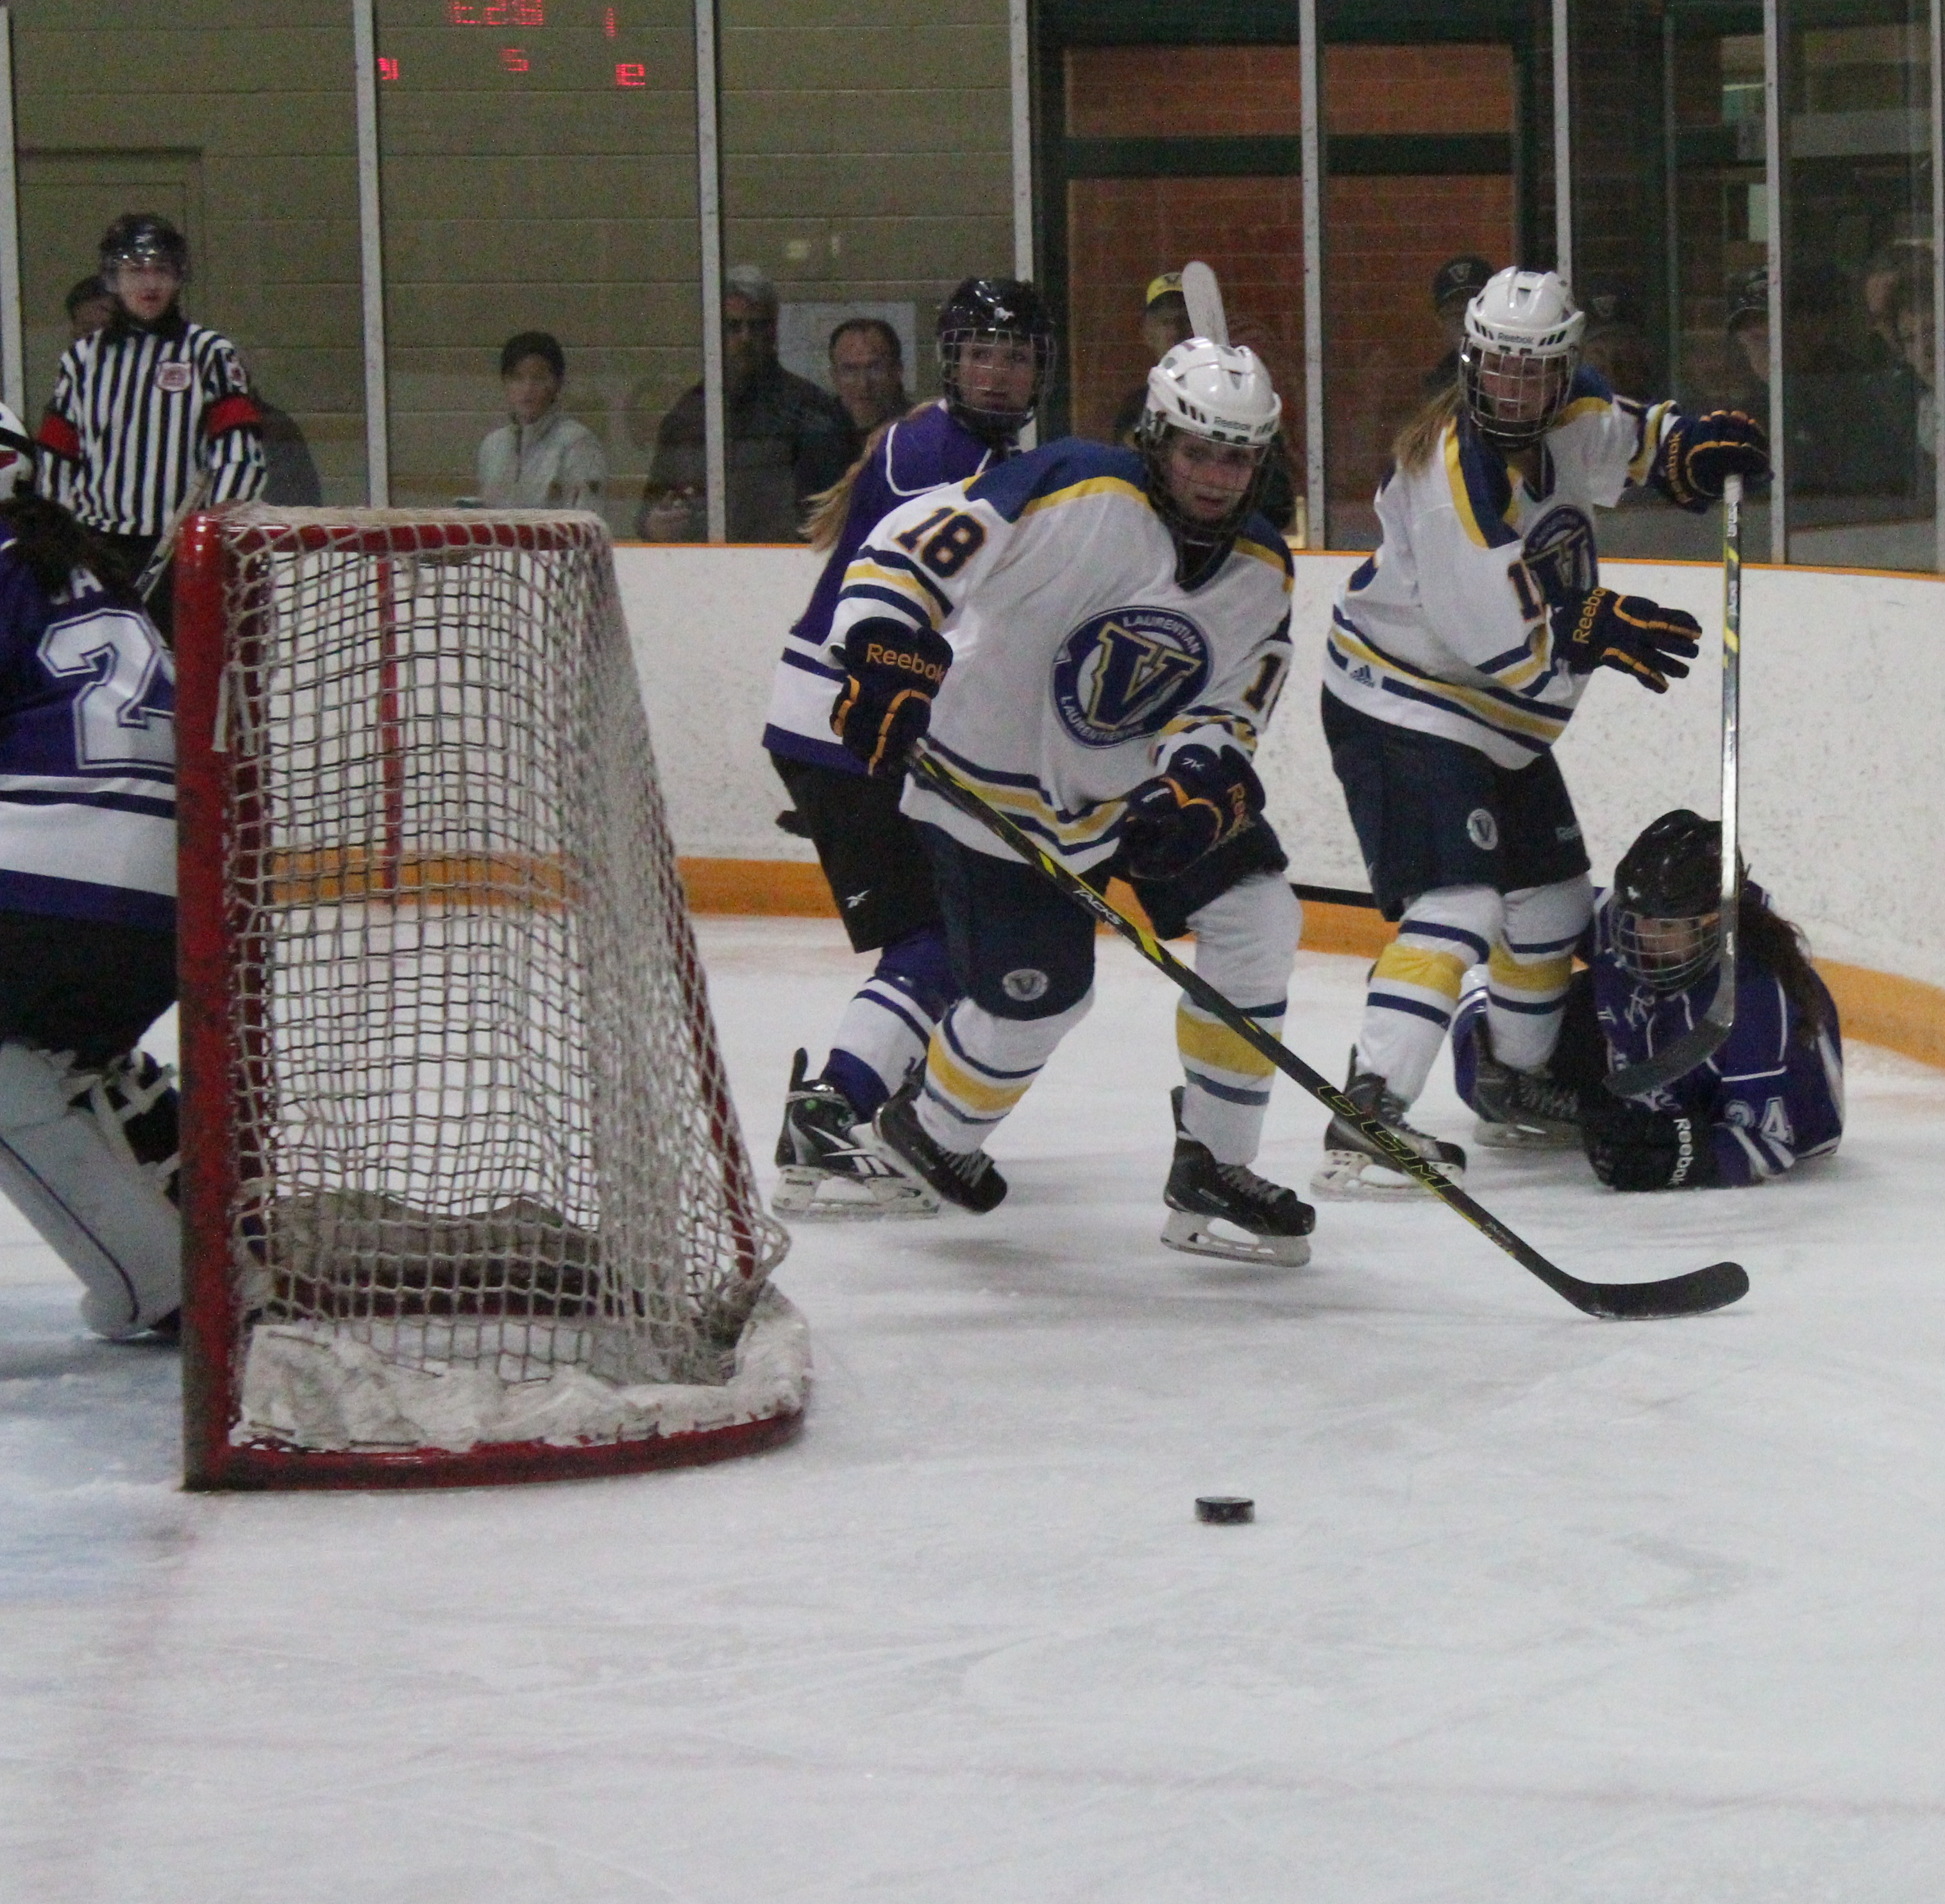 The women Voyageur's hockey team playing at home this weekend. Photo by Gabriel Rodrigues